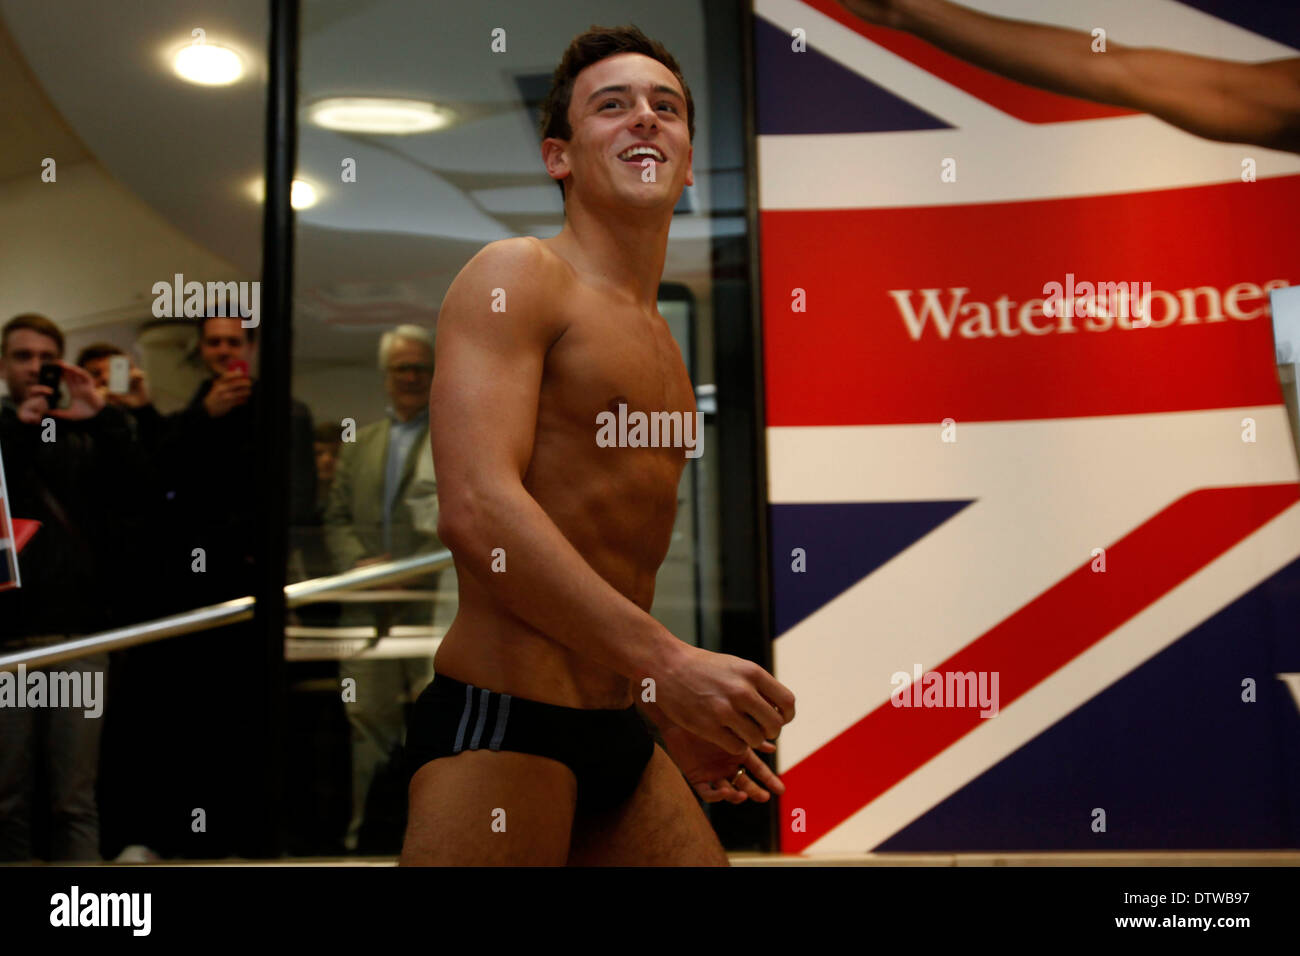 Tom Daley Diver Signed London 2012 Photograph Sports Memorabilia London 2012